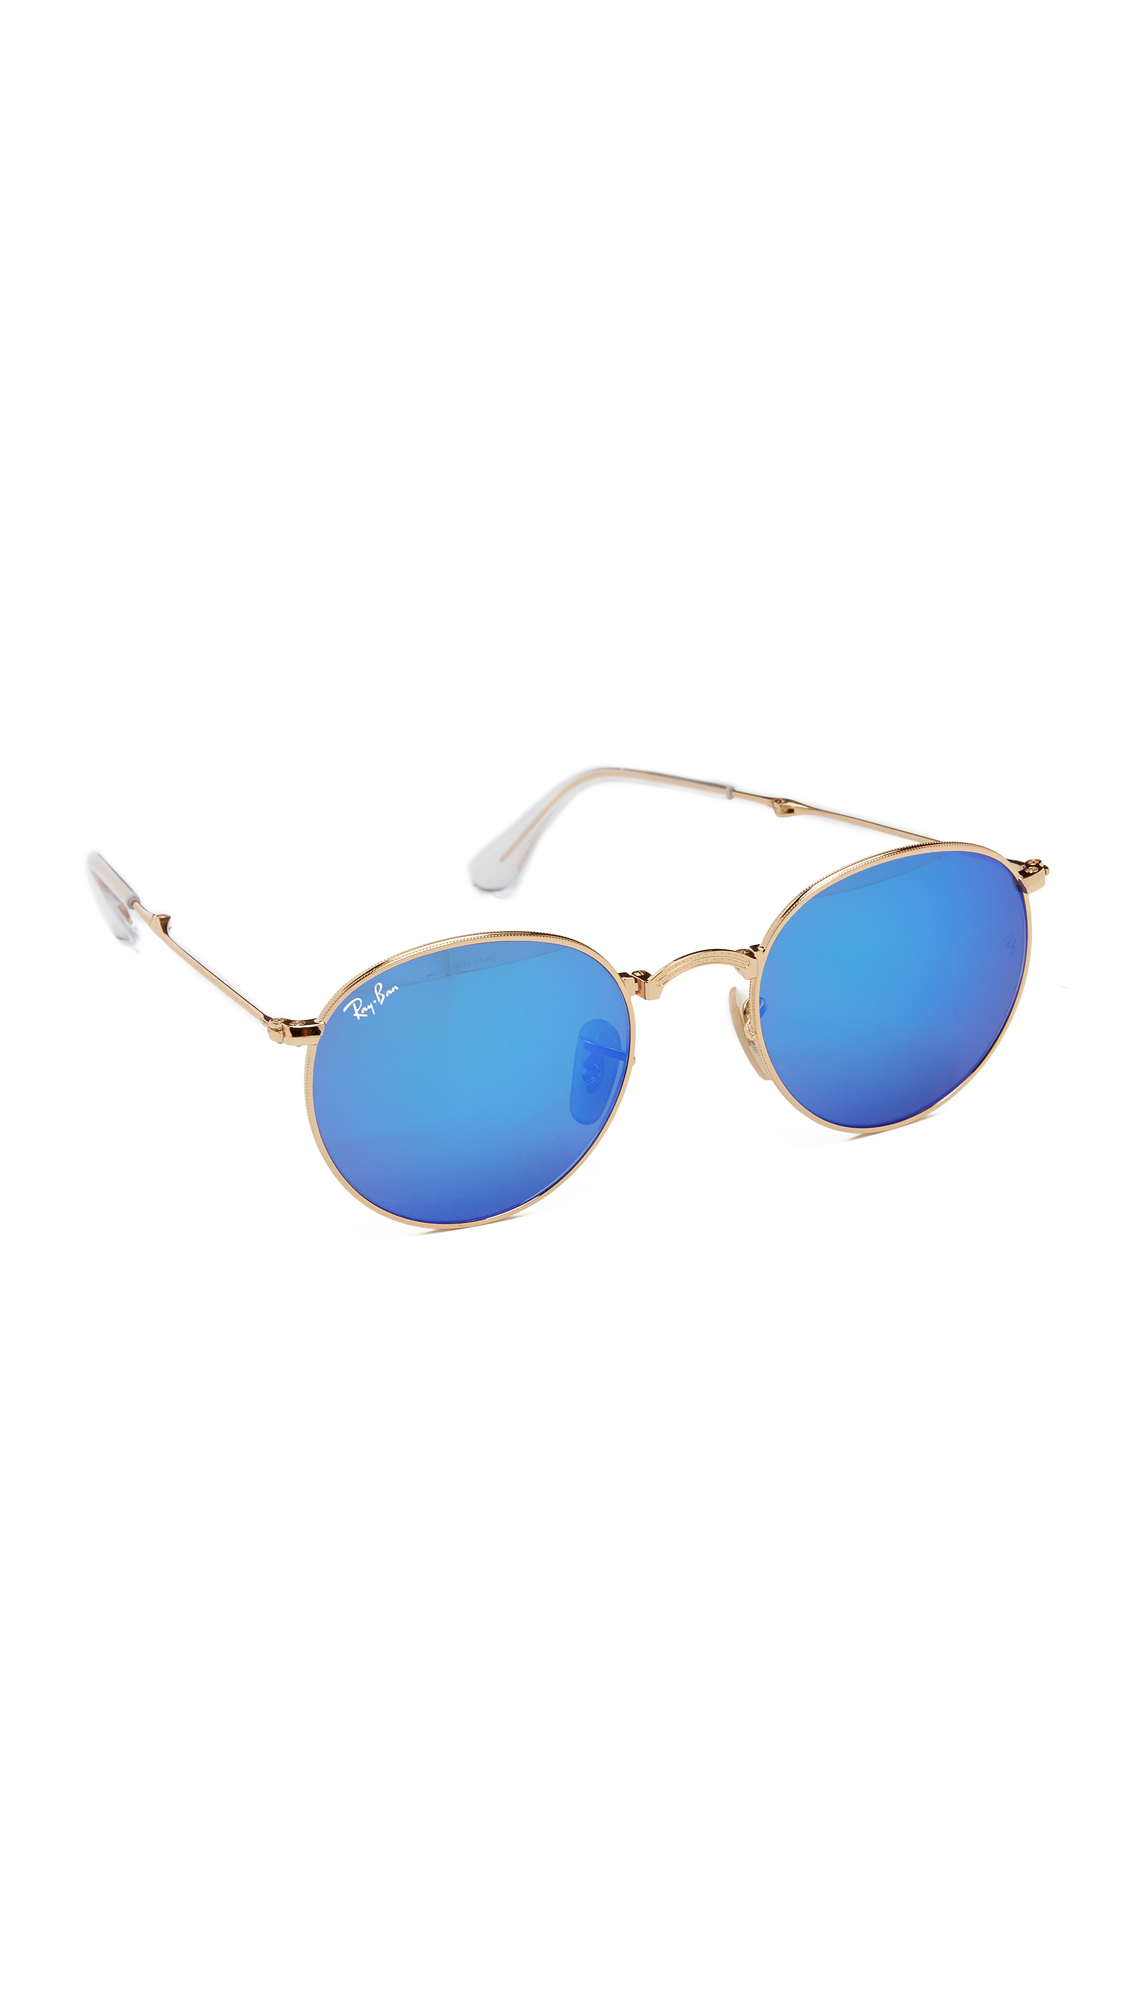 Ray-Ban Icons Mirrored Round Sunglasses in Metallic - Lyst 253acf8486